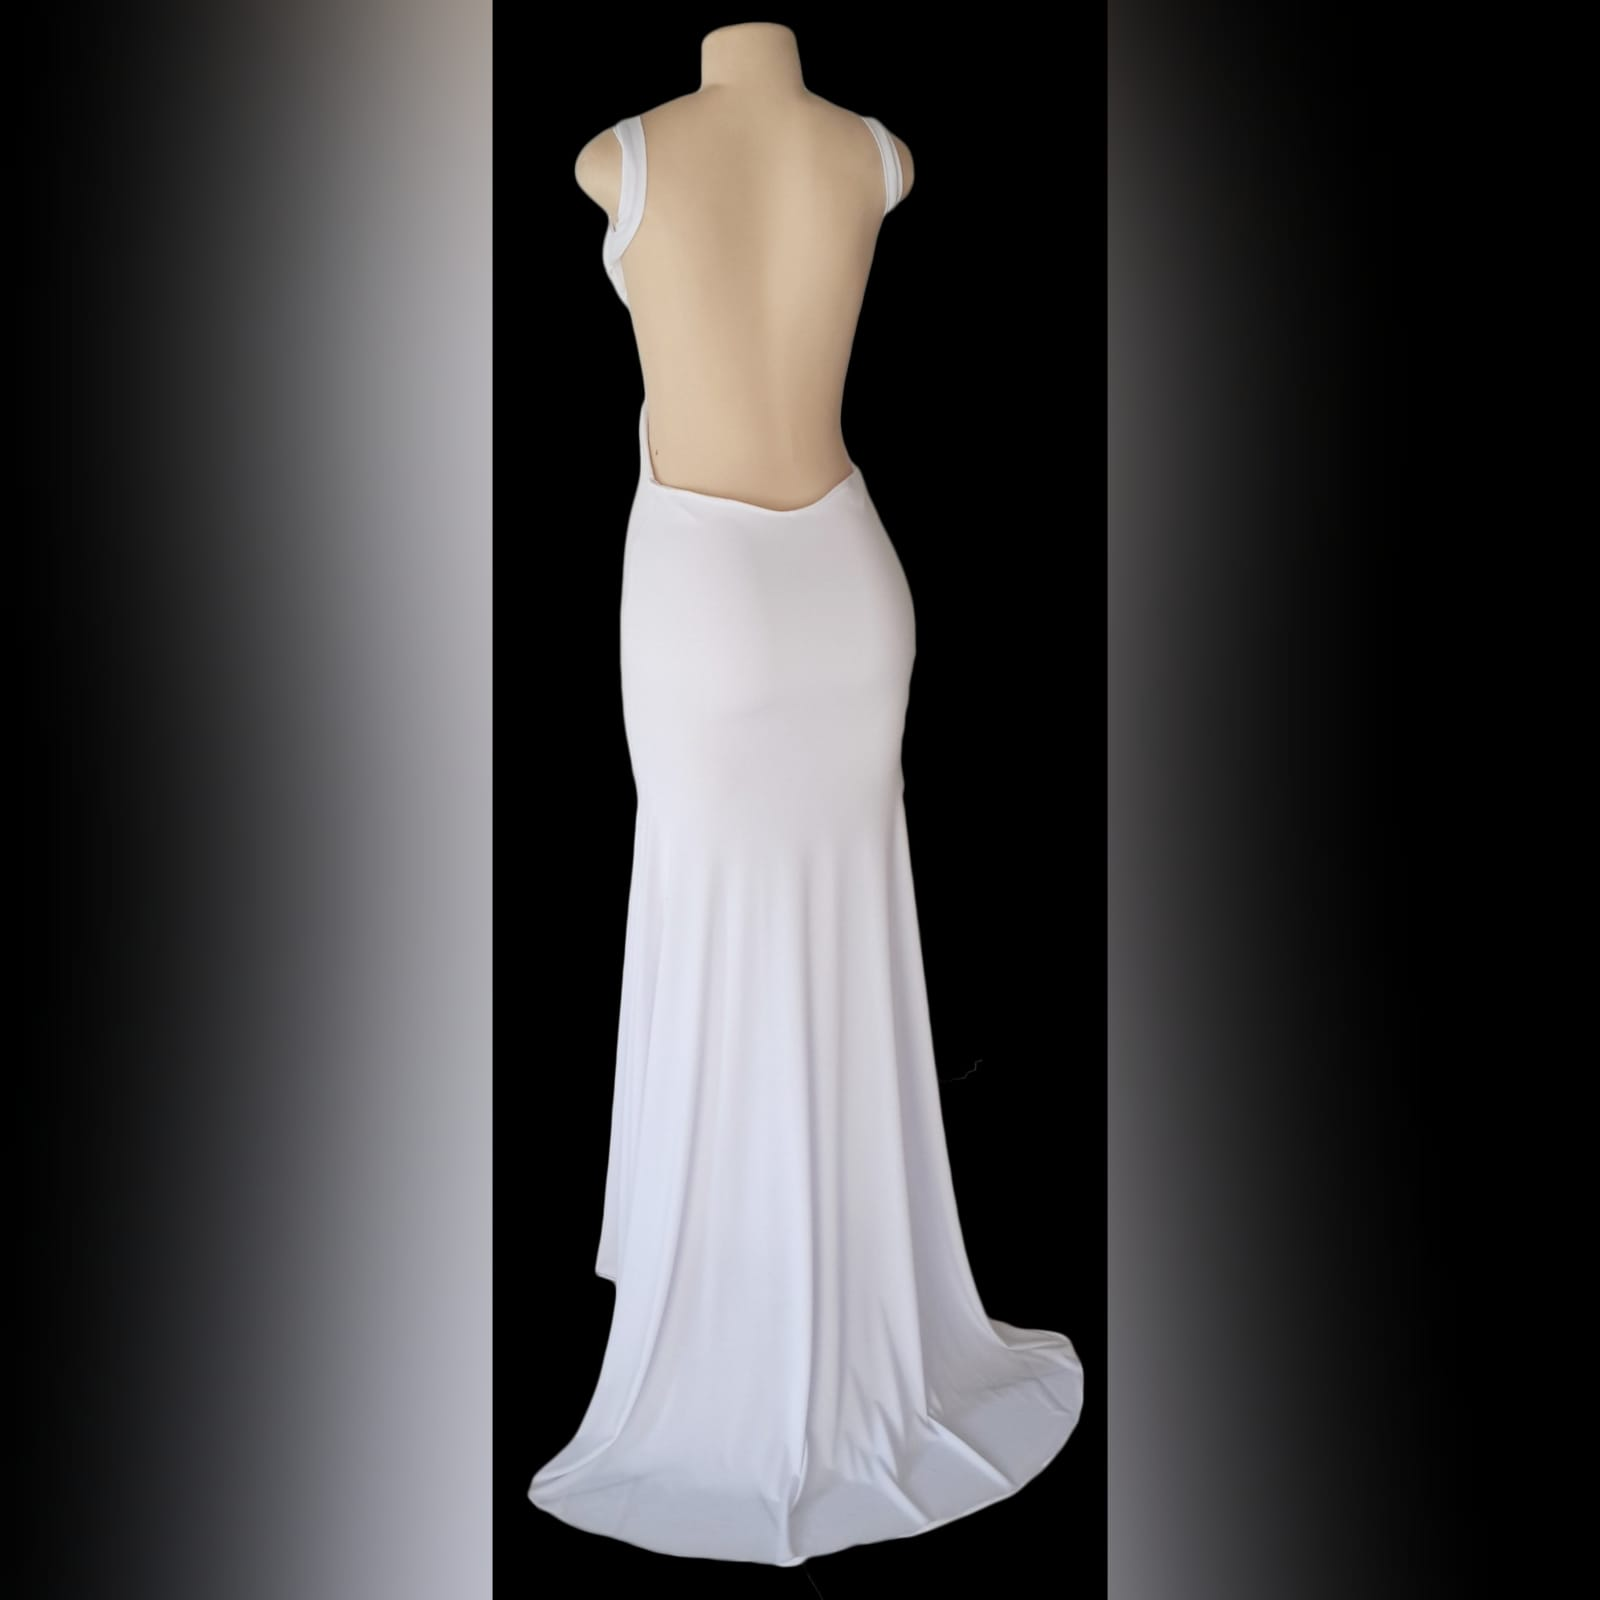 White sexy long evening dress with a low open back 2 white sexy long evening dress with a low open back, shoulder straps, sweetheart neckline with a diamante finish and a train